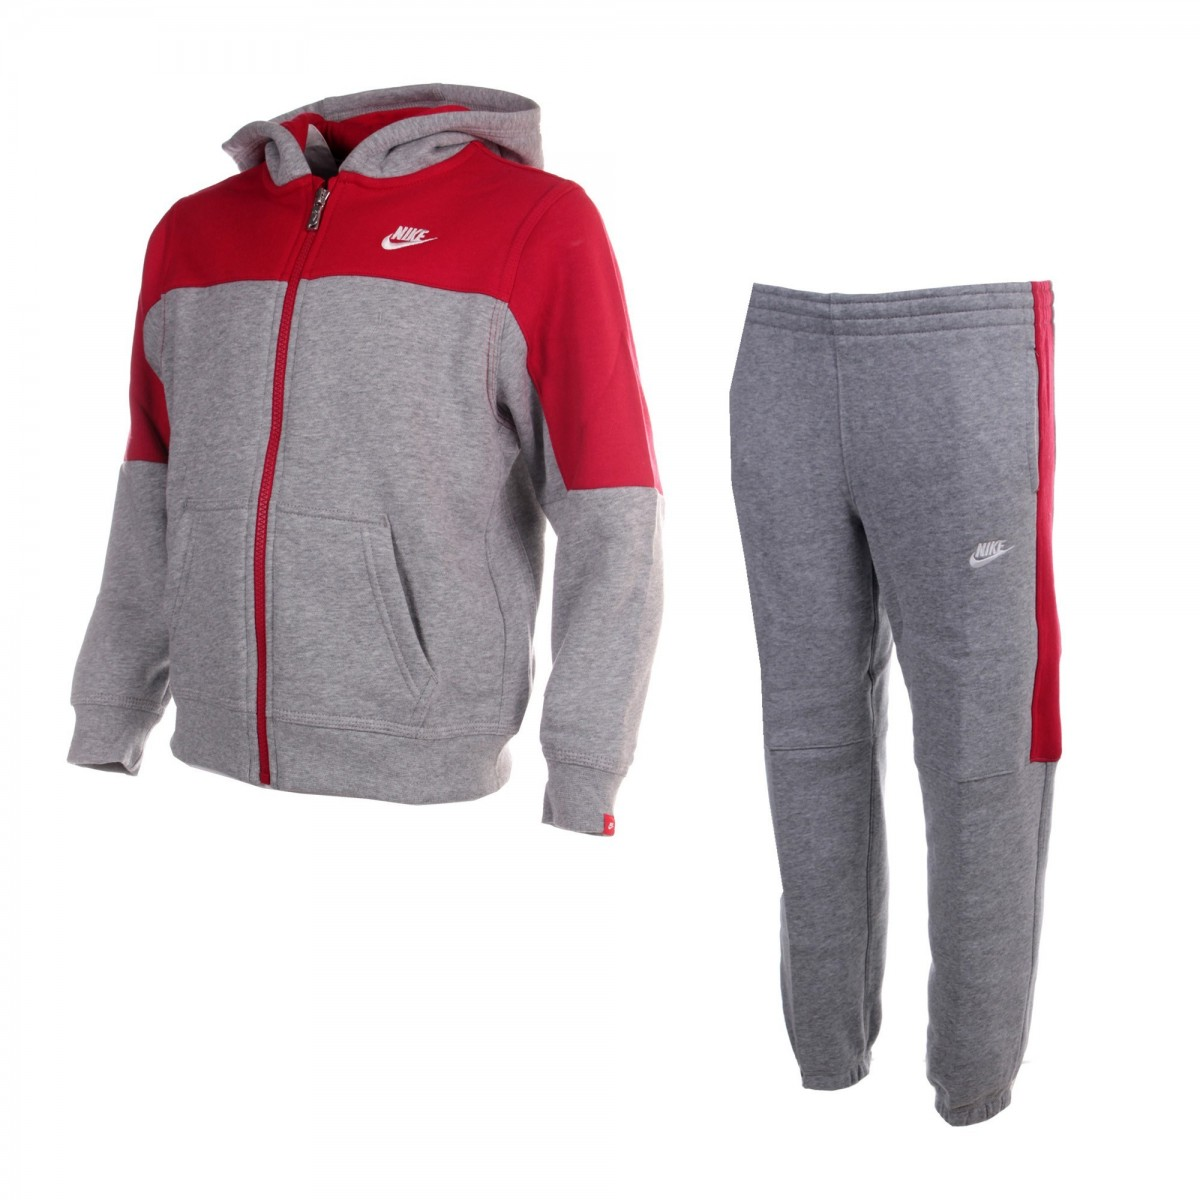 93d64325f3b64 Ensemble de survêtement nike Franchise Junior